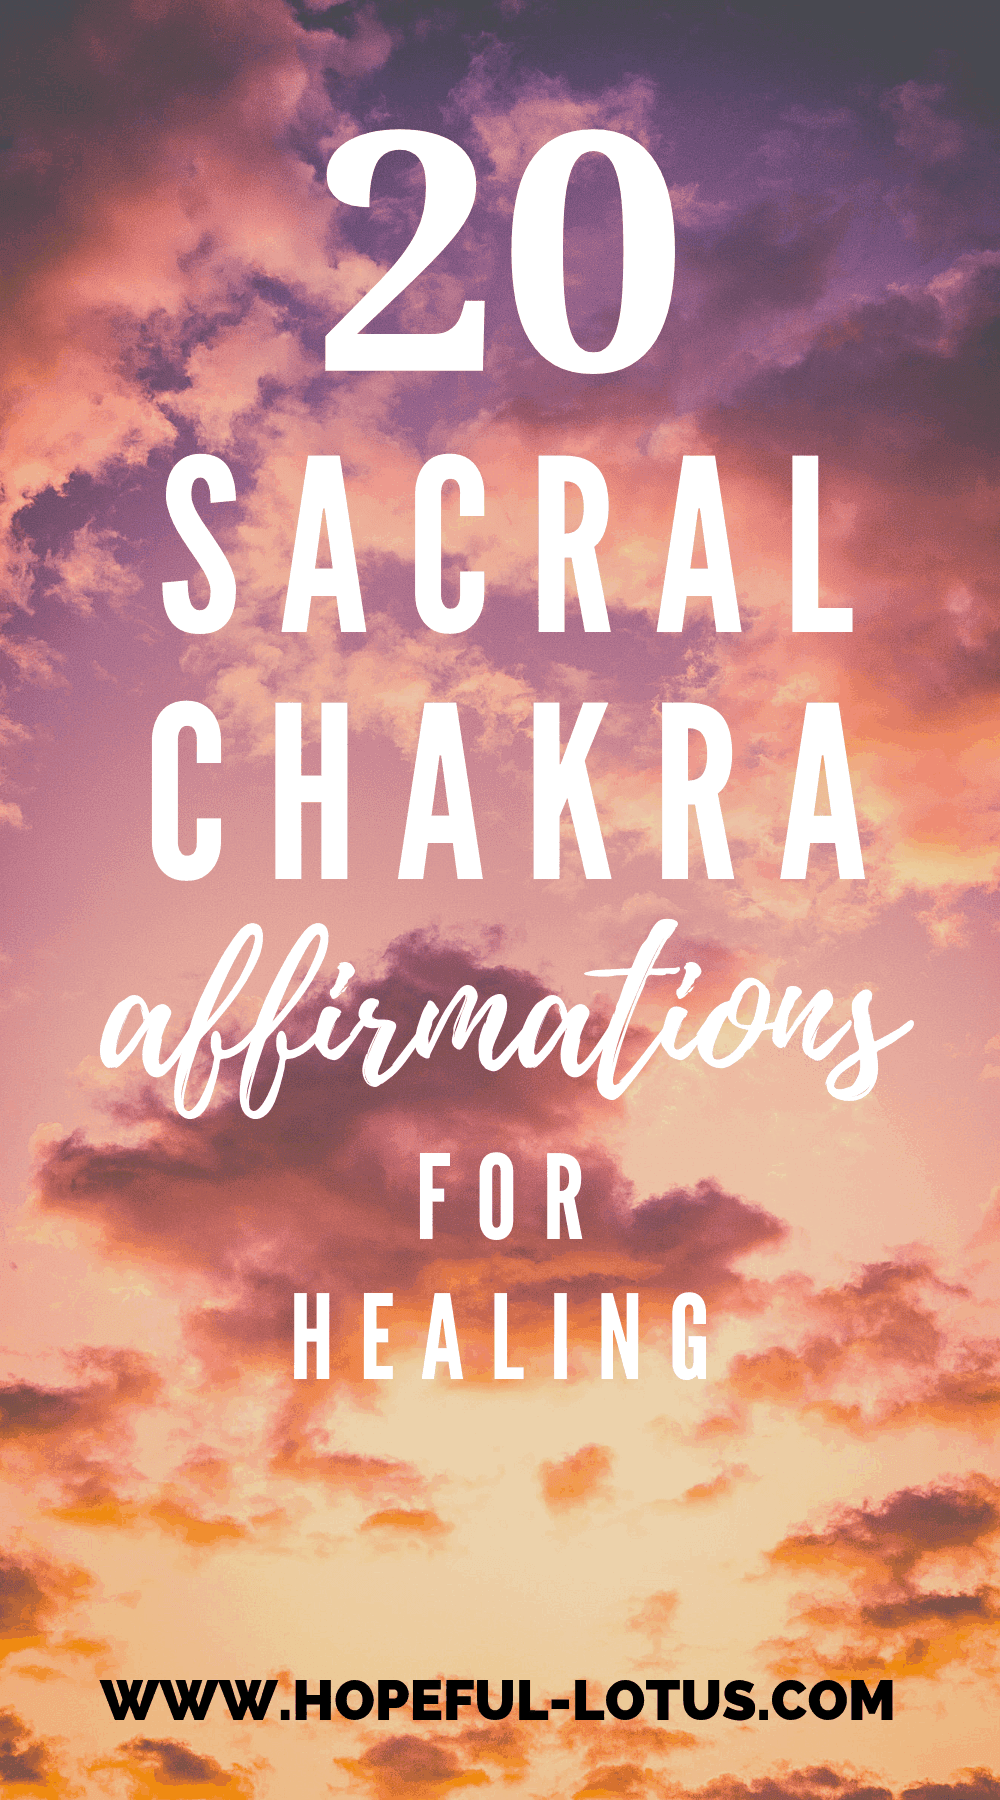 The sacral chakra is associated with sexuality, creativity and emotions. When there is a sacral chakra blockage, you might experience unpleasant symptoms in these areas. These sacral chakra affirmations can be used to help unblock a sacral chakra imbalance. Repeat these mantras daily to experience the healing benefits!